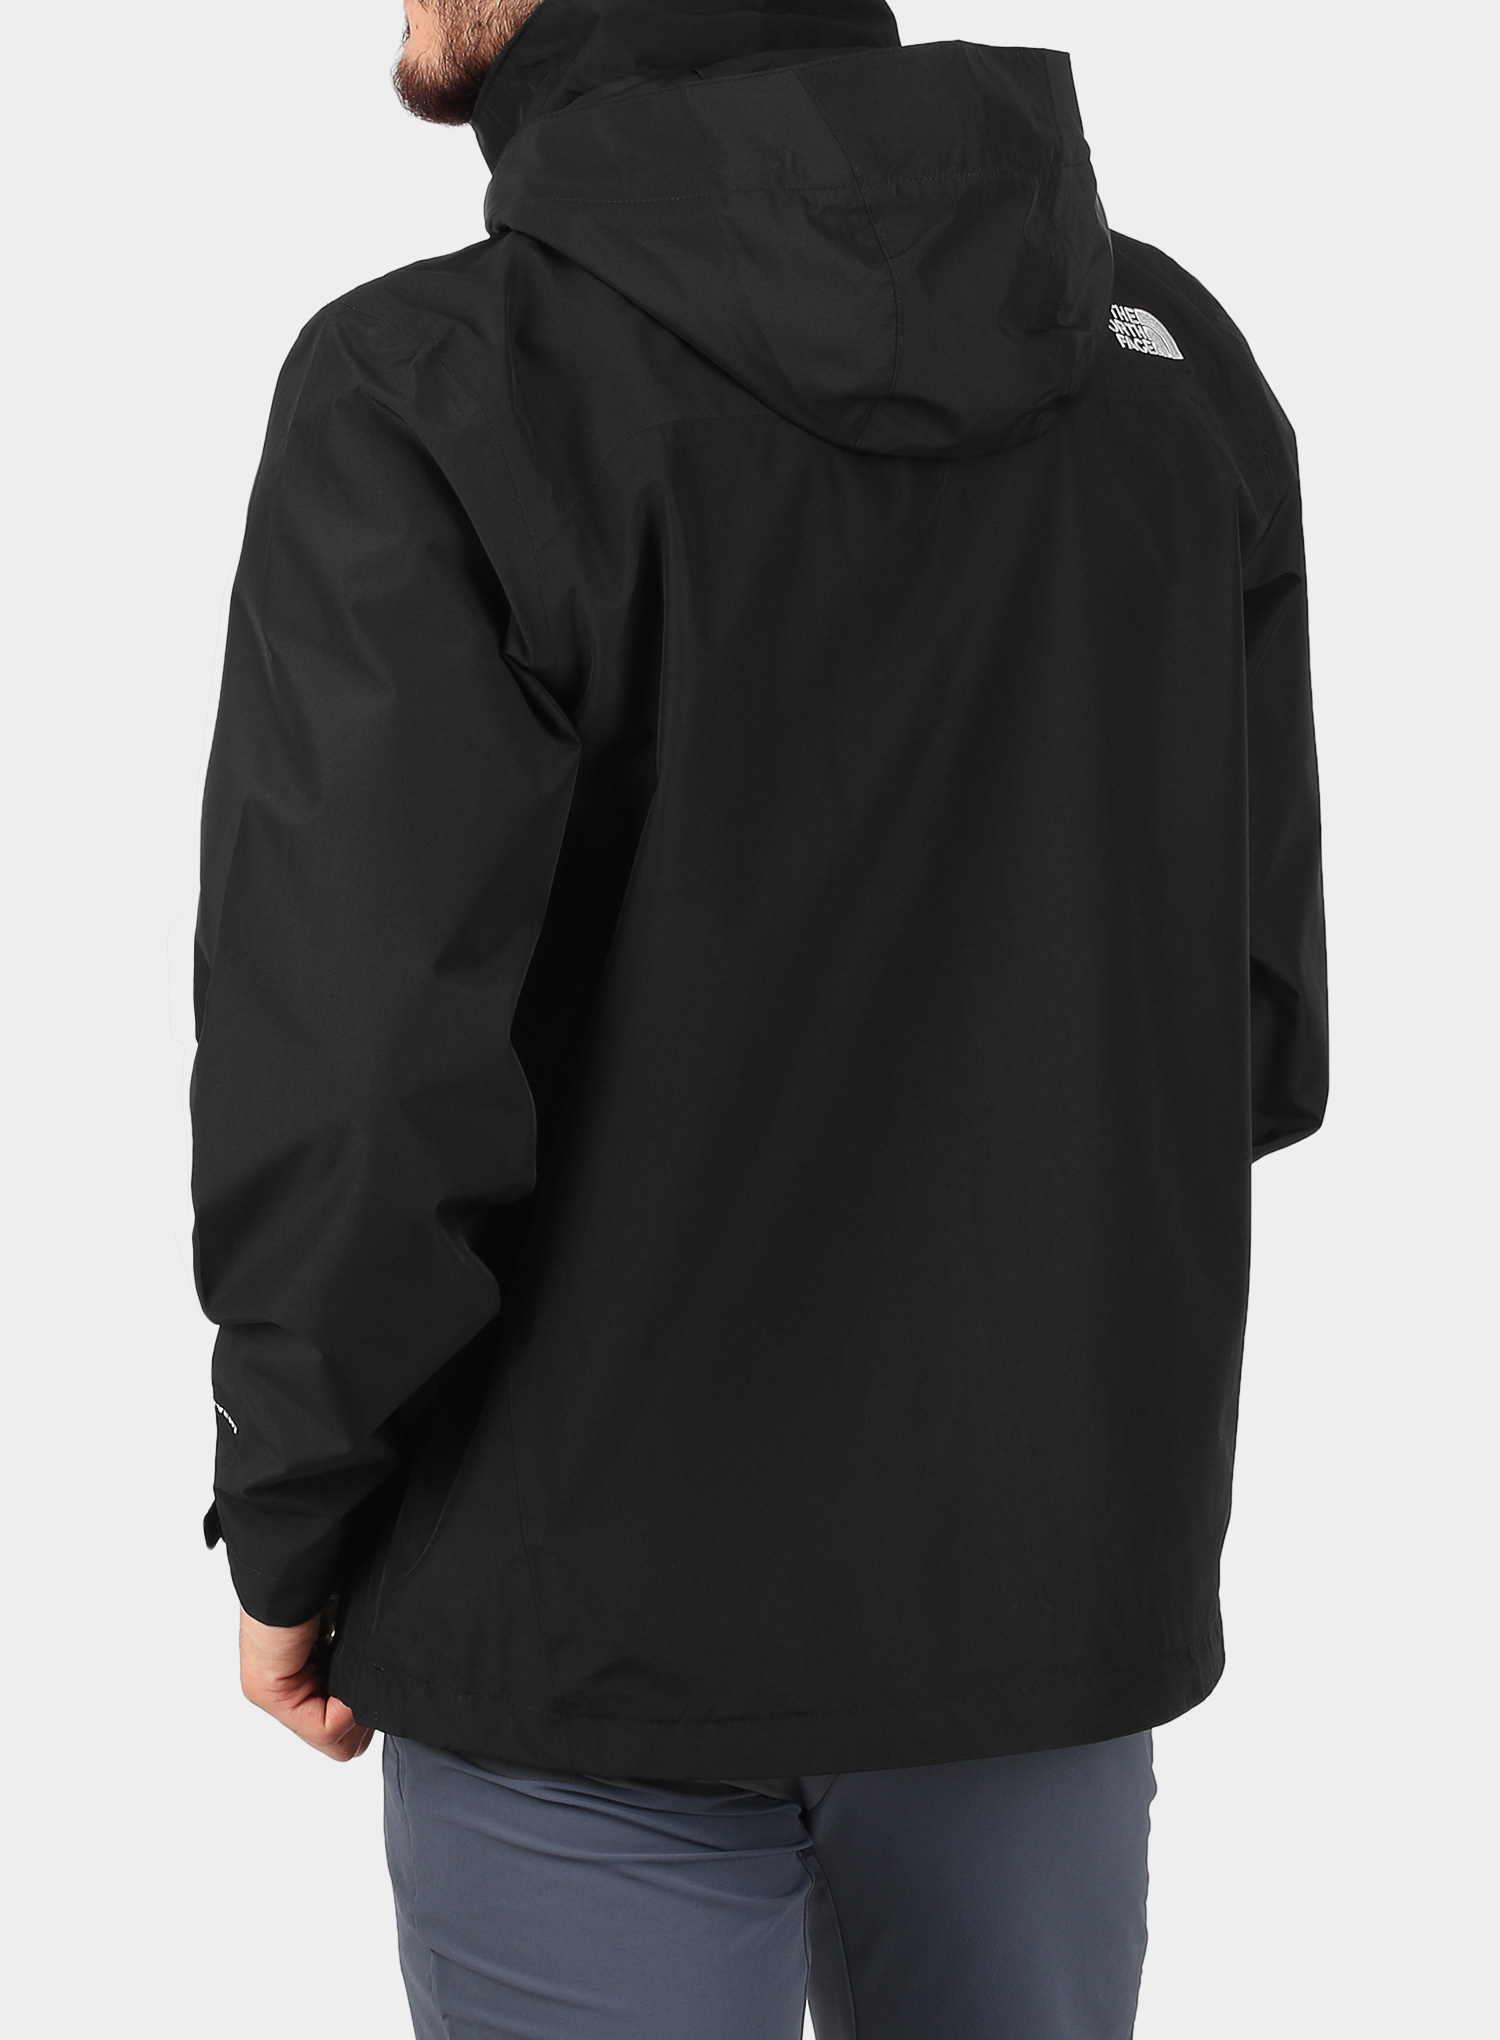 Kurtka The North Face Sangro Jacket - black - zdjęcie nr. 2